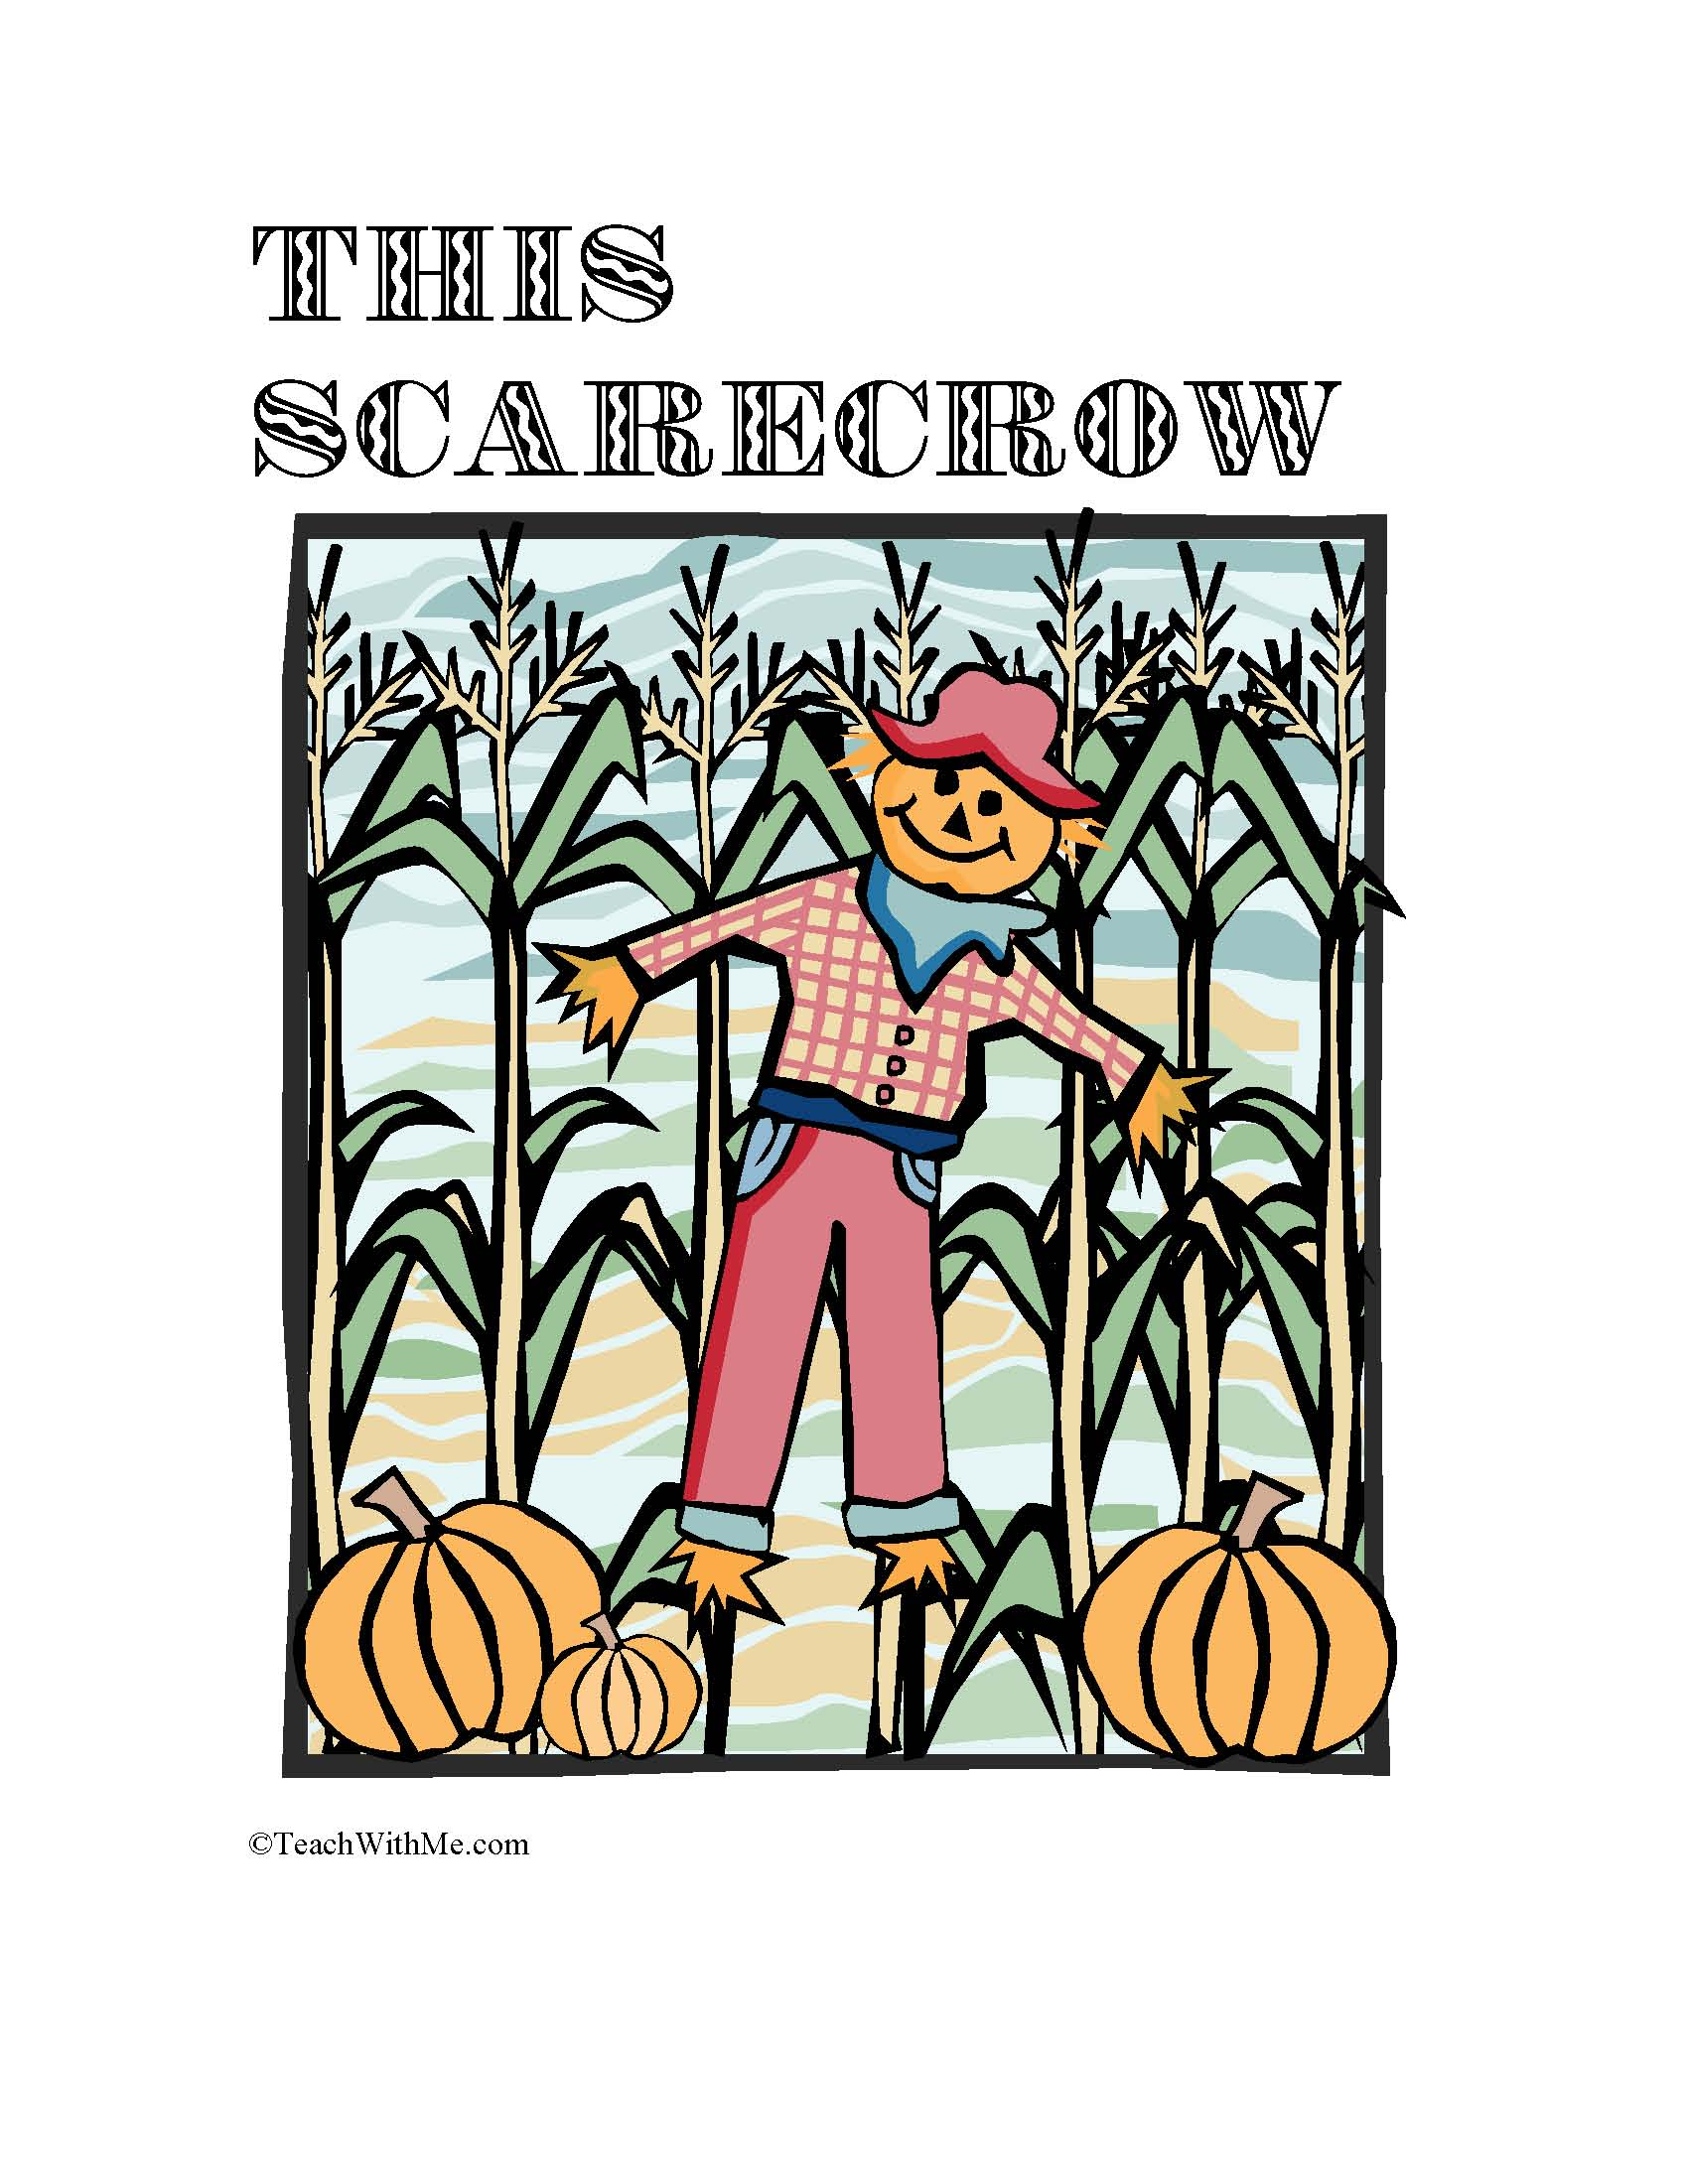 scarecrow activities, easy readers, counting booklet, number words, daily 5 activities, word work activities, rhyming word activities, rhyming word lessons, common core lessons for first grade, common core lessons for kindergarten, nursery rhymes, activities for this old man, this old man lessons, scarecrow lessons, class booklets, fall counting booklets,